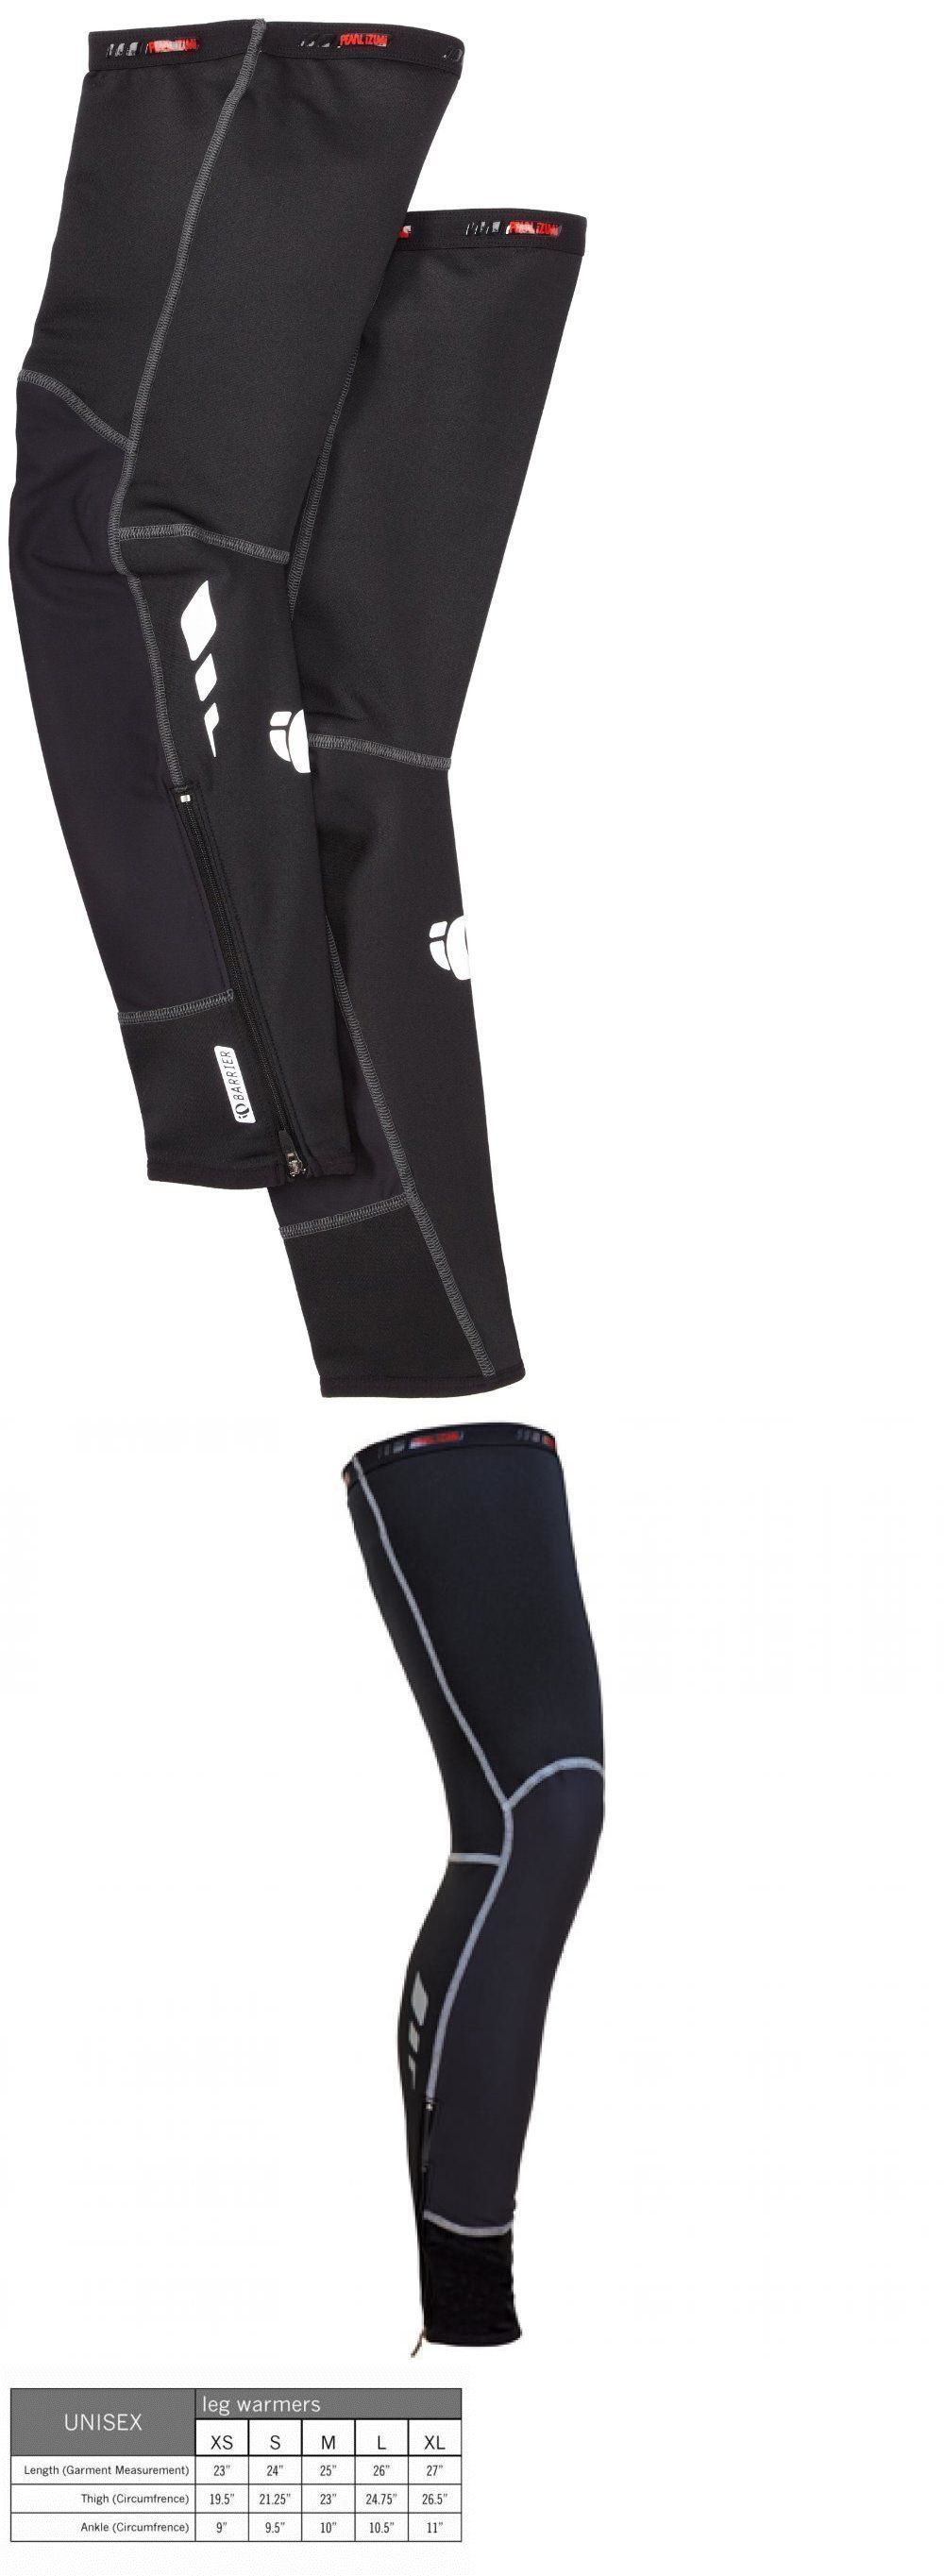 Arm Knee and Leg Warmers 85045: Pearl Izumi Unisex Pro Barrier Leg Warmer Black S Xl Windproof New BUY IT NOW ONLY: $53.0